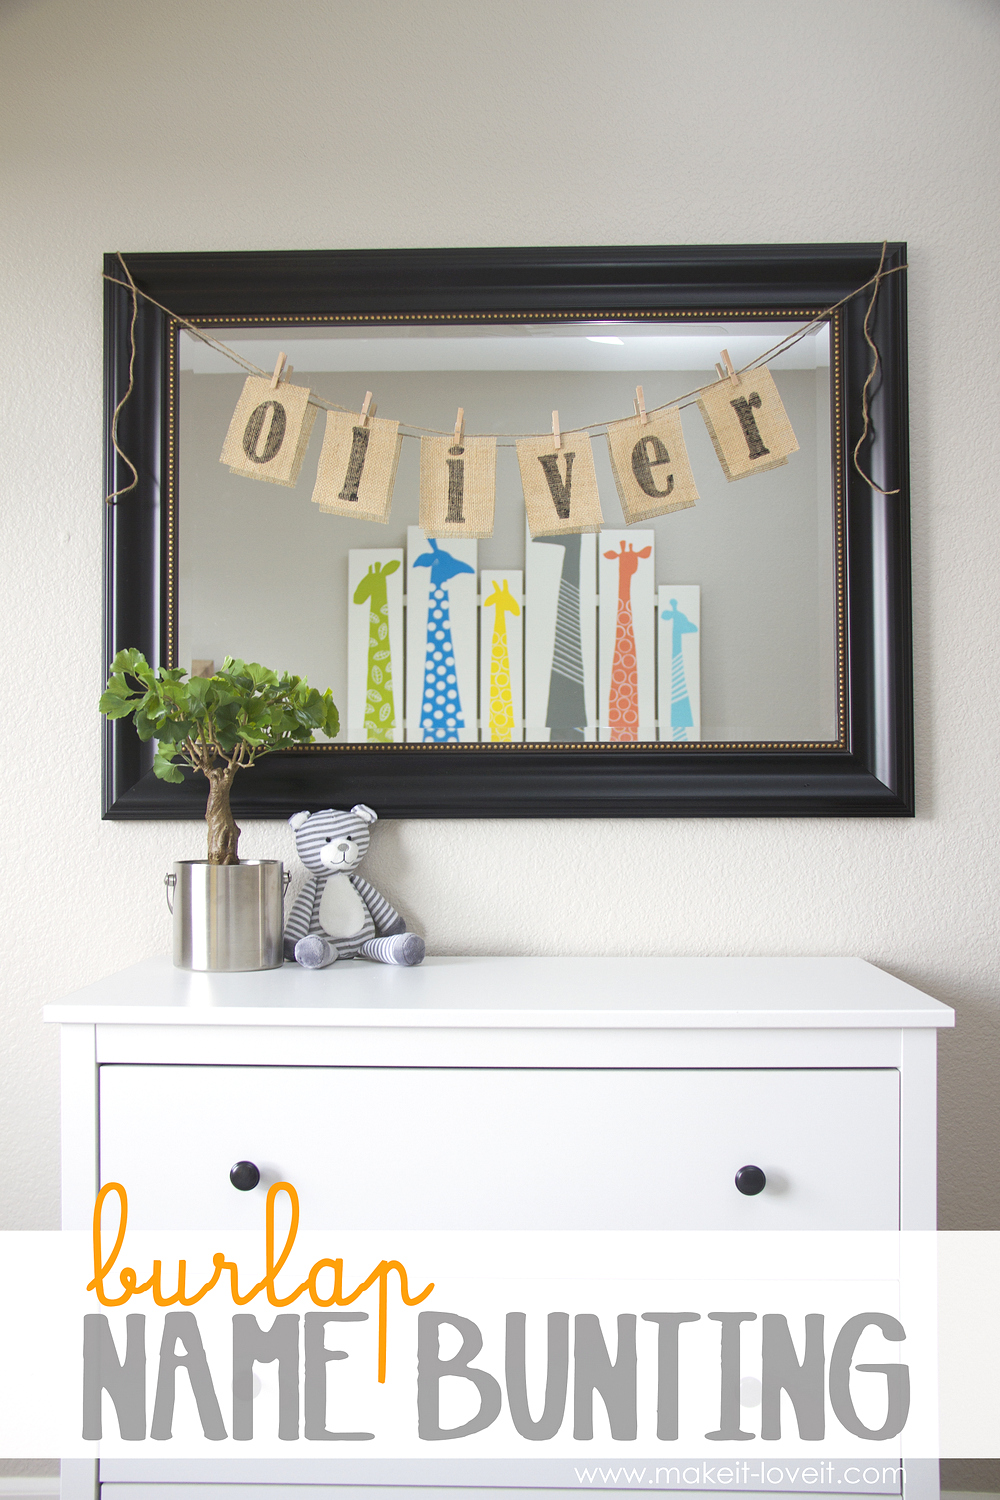 Burlap Name Bunting…..for baby Oliver's nursery